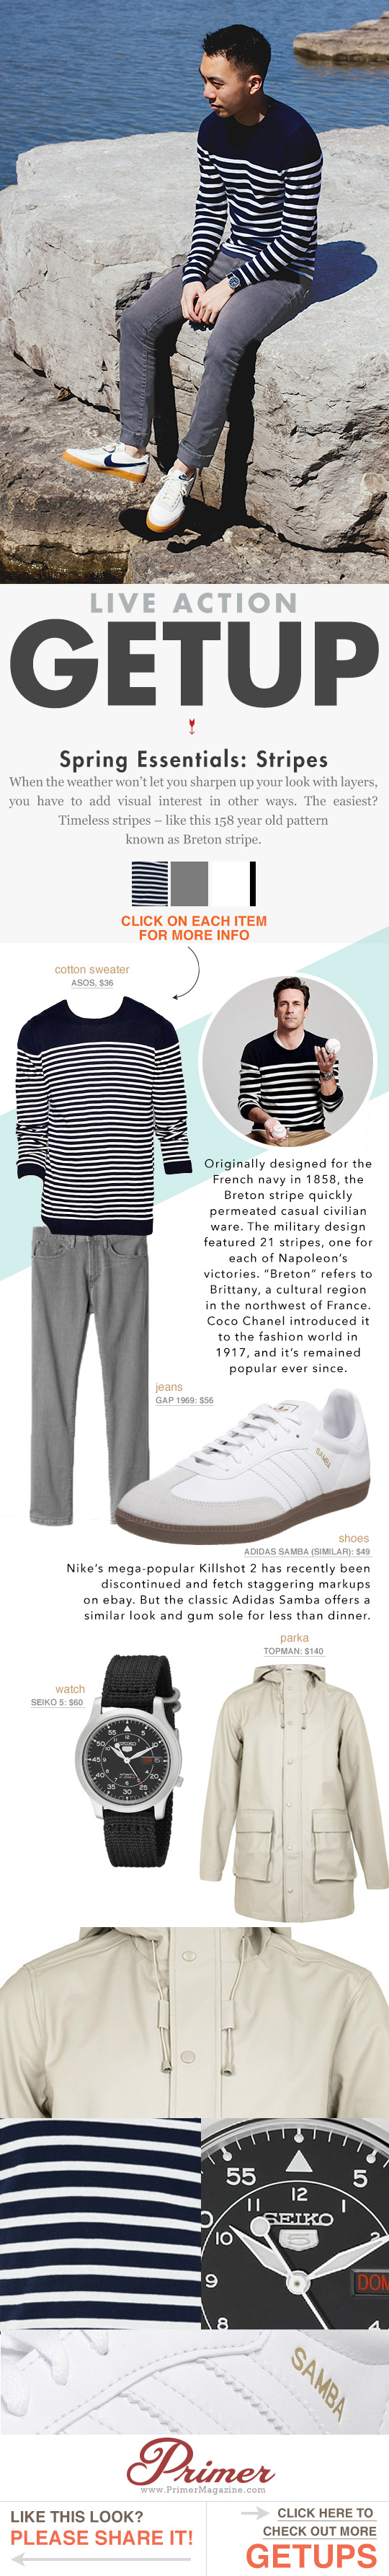 The Getup: Breton Stripe